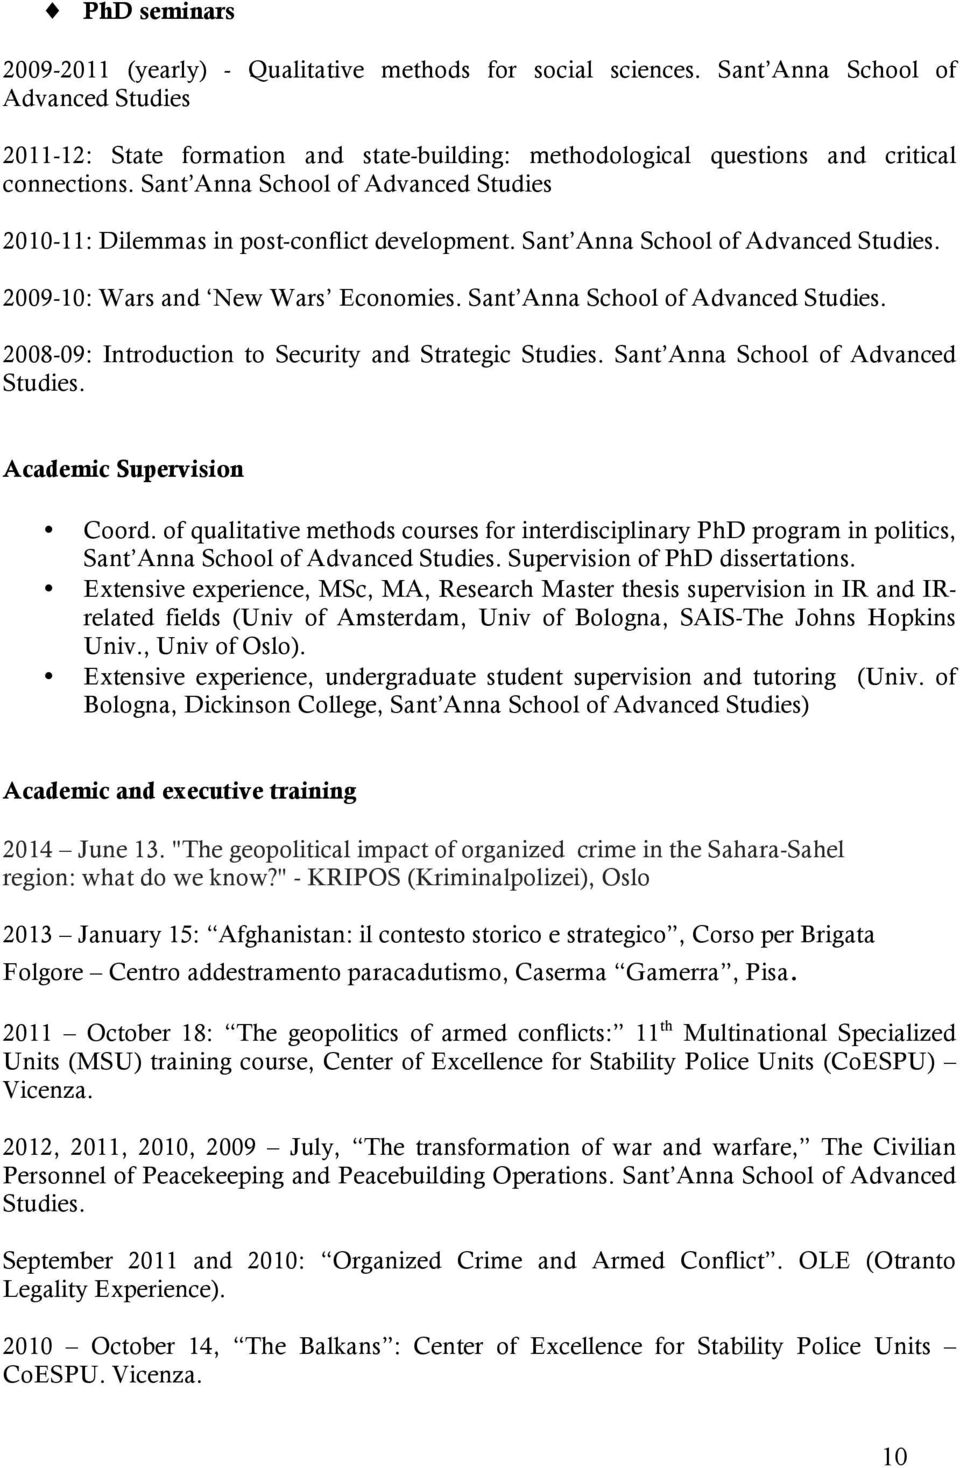 Sant Anna School of Advanced Studies 2010-11: Dilemmas in post-conflict development. Sant Anna School of Advanced Studies. 2009-10: Wars and New Wars Economies. Sant Anna School of Advanced Studies. 2008-09: Introduction to Security and Strategic Studies.